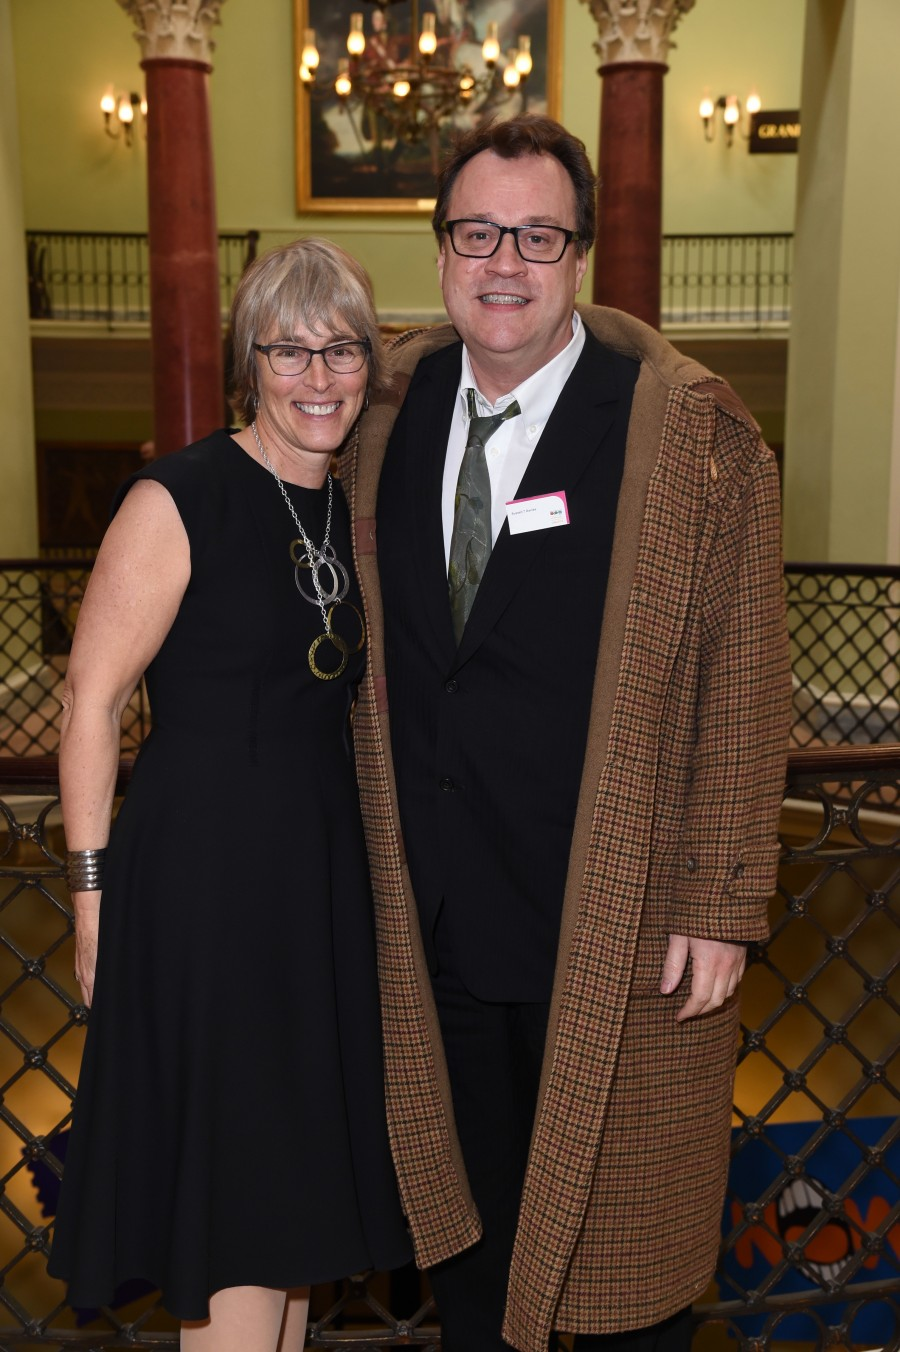 BPG Awards March 2016. Kate with Russell T Davies, who revived Dr Who and wrote Cucumber, Banana and Tofu for Channel4, E4 and All 4